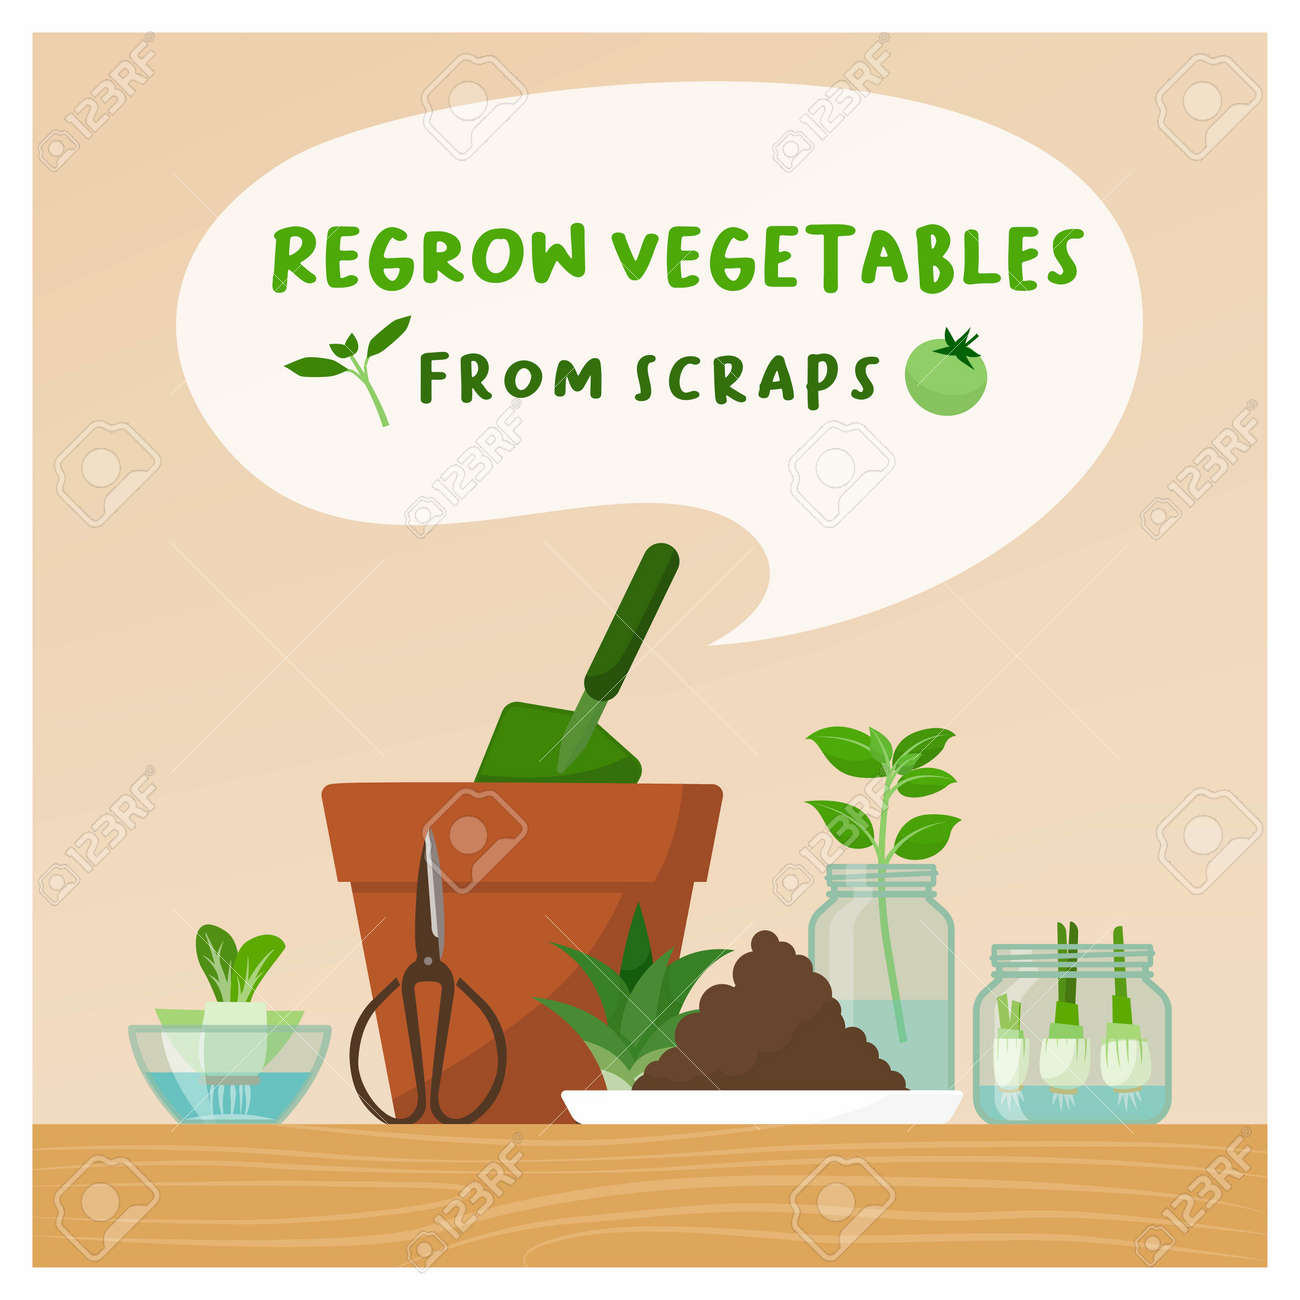 Regrow vegetables from scraps at home: zero waste, DIY gardening and healthy food concept - 164341199